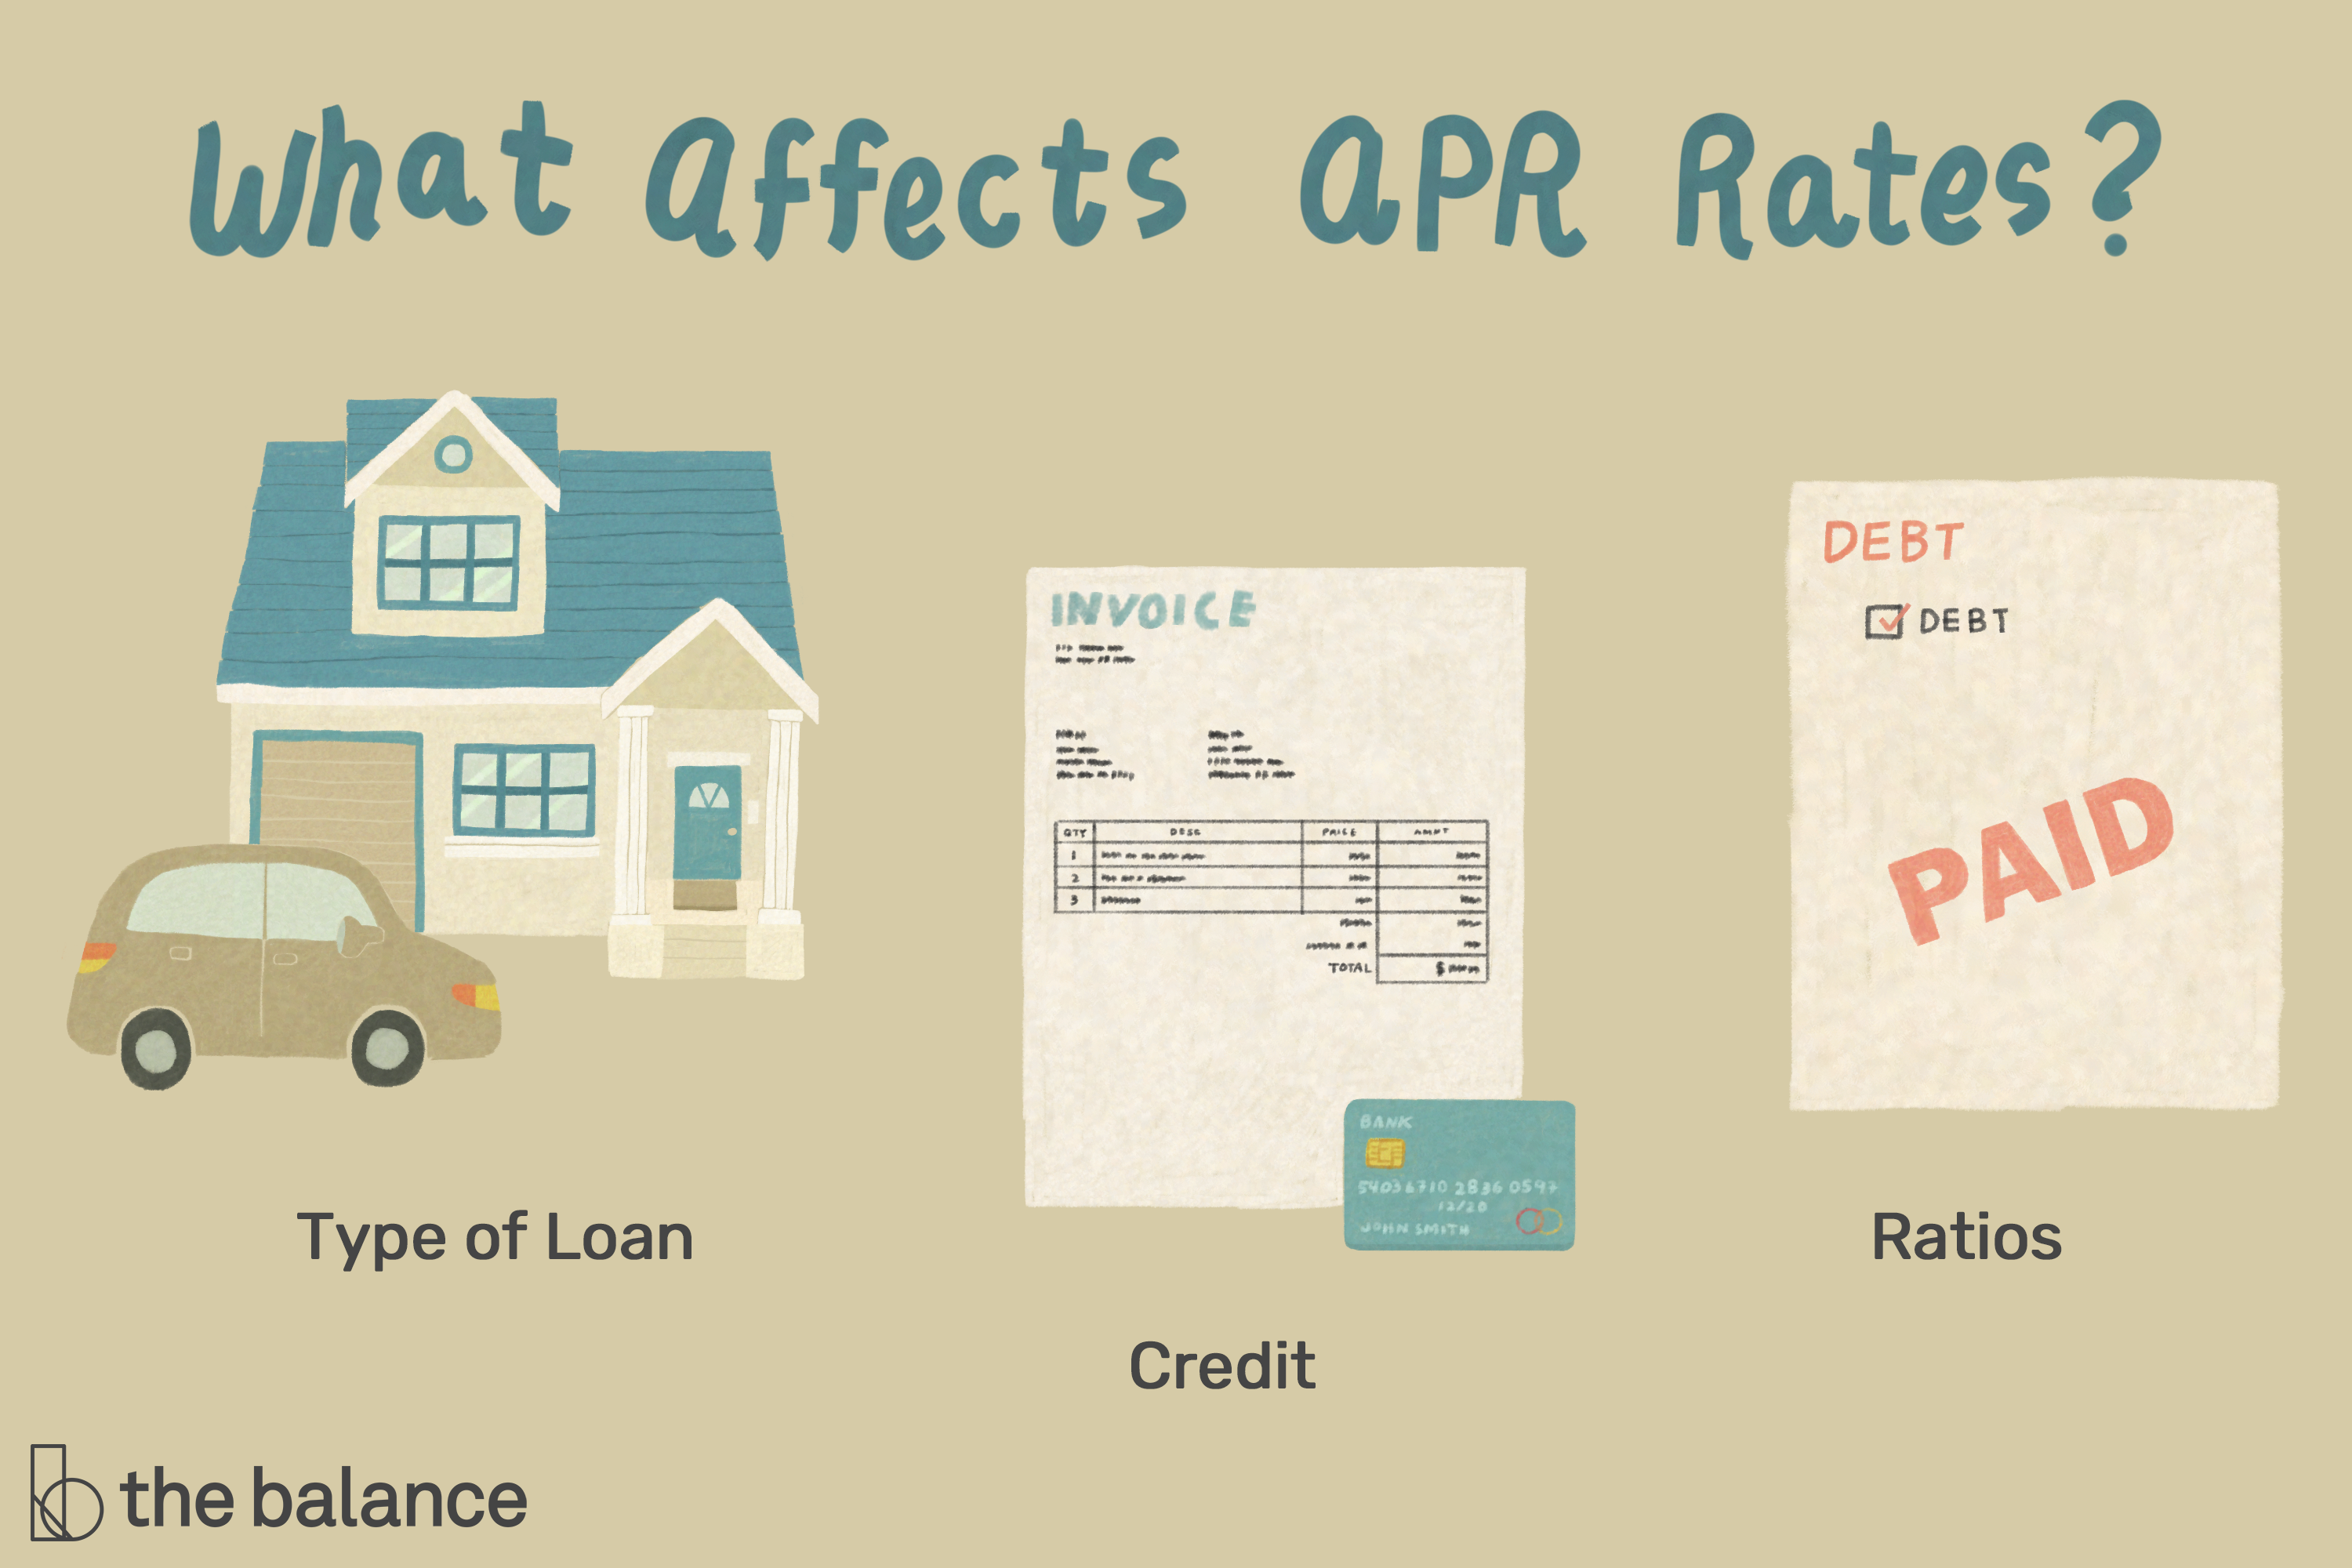 what is a good apr for a loan